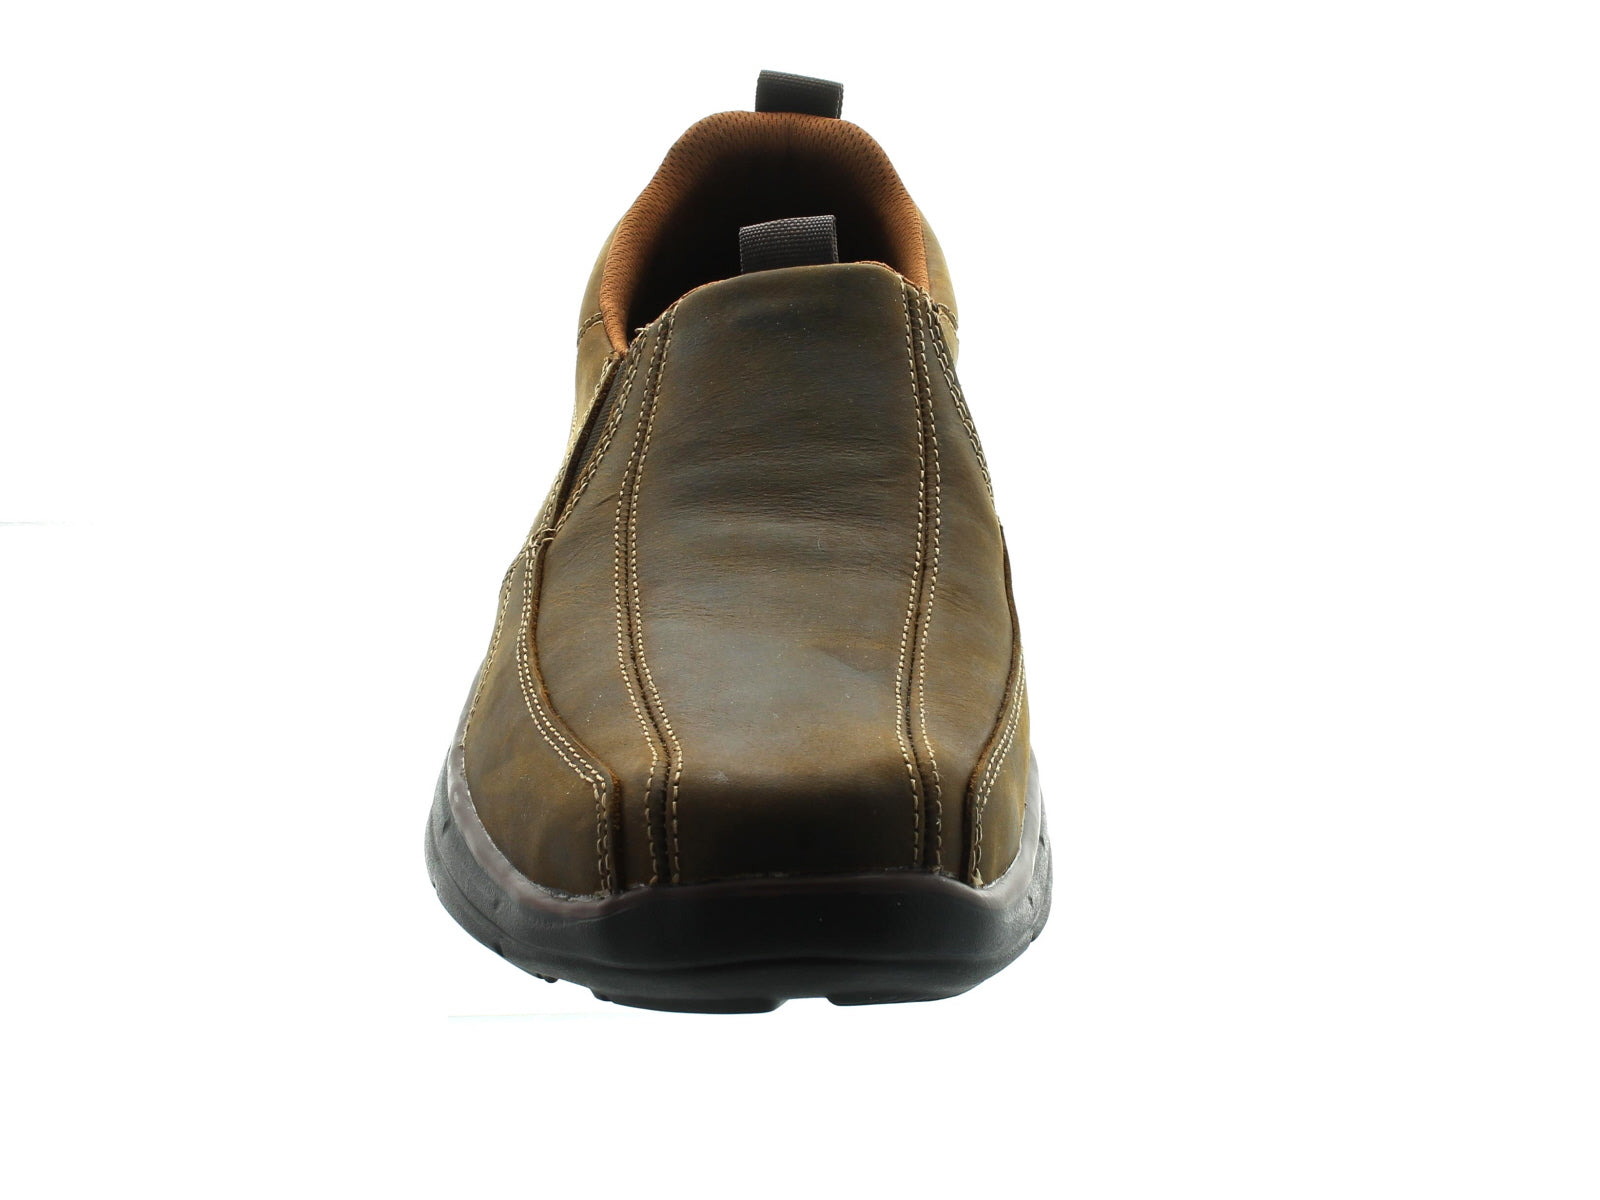 Skechers 64503 in Brown front view